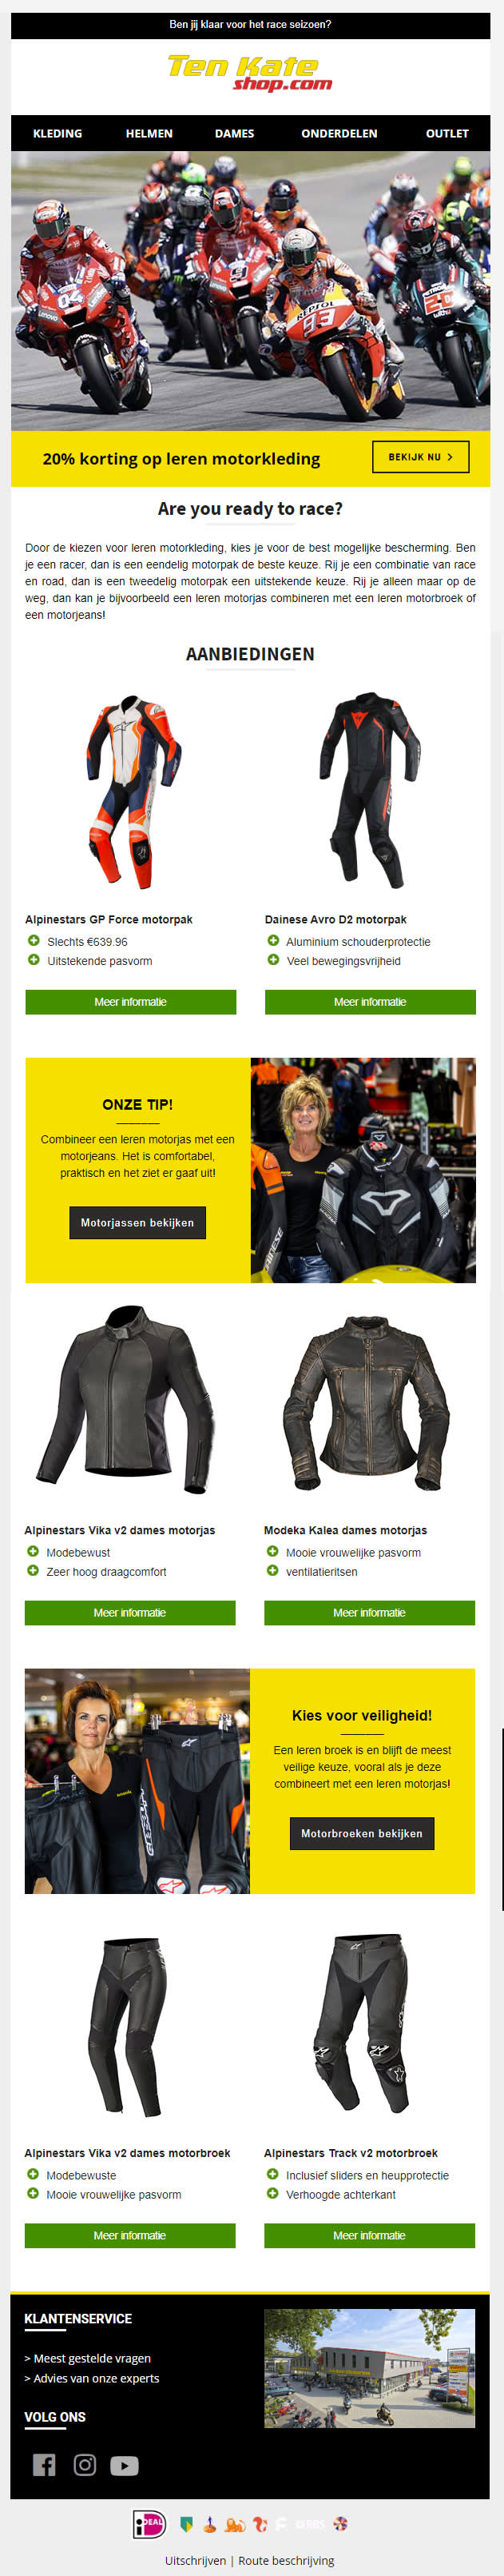 Image of a website with racing gear clothing